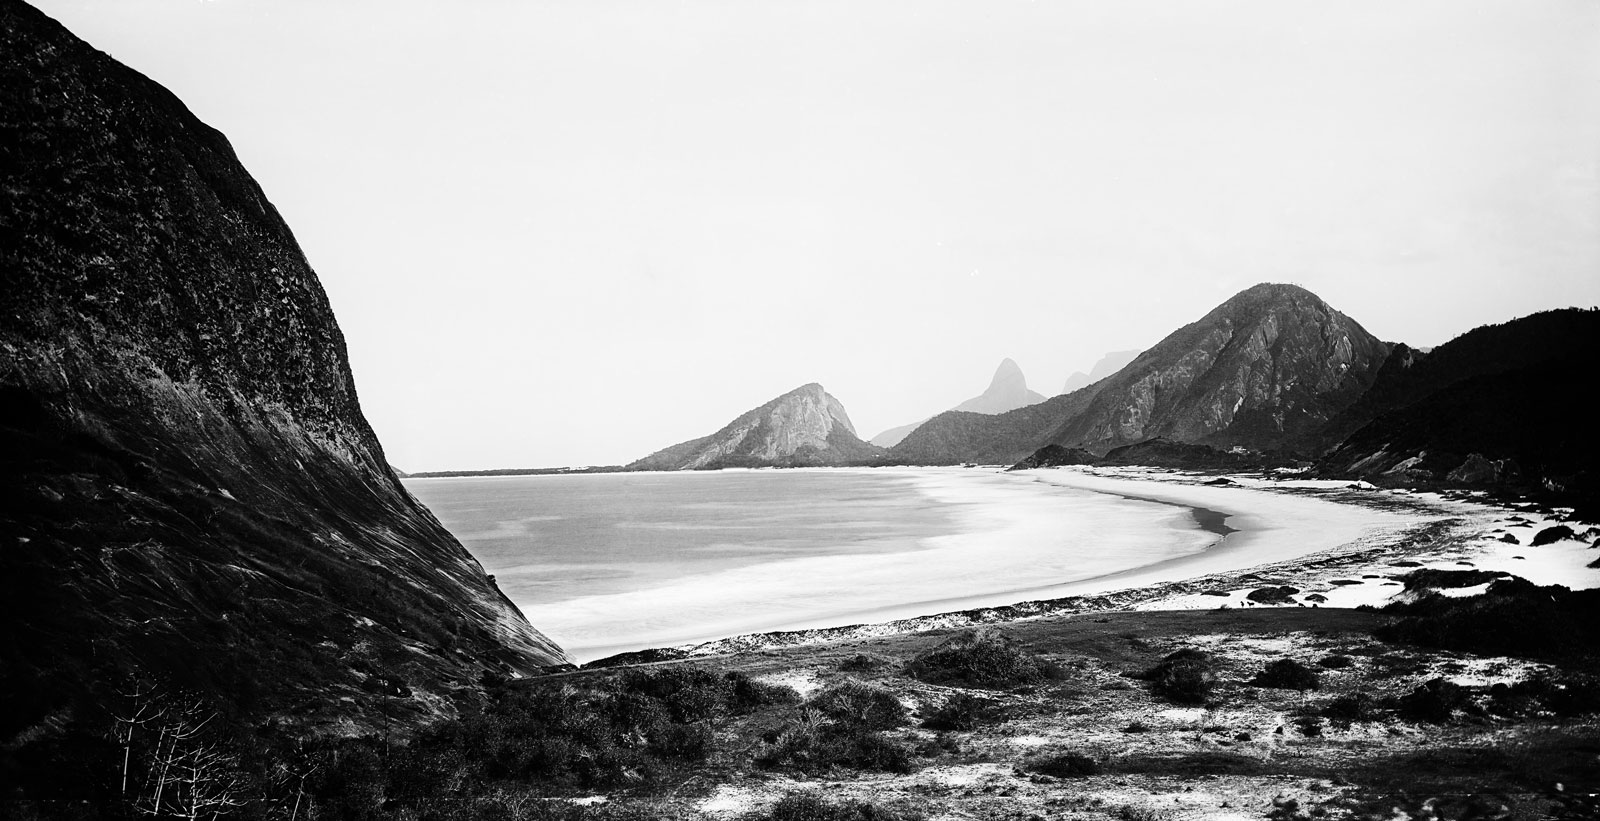 Copacabana Beach viewed from the foot of Leme Hill, circa 1890